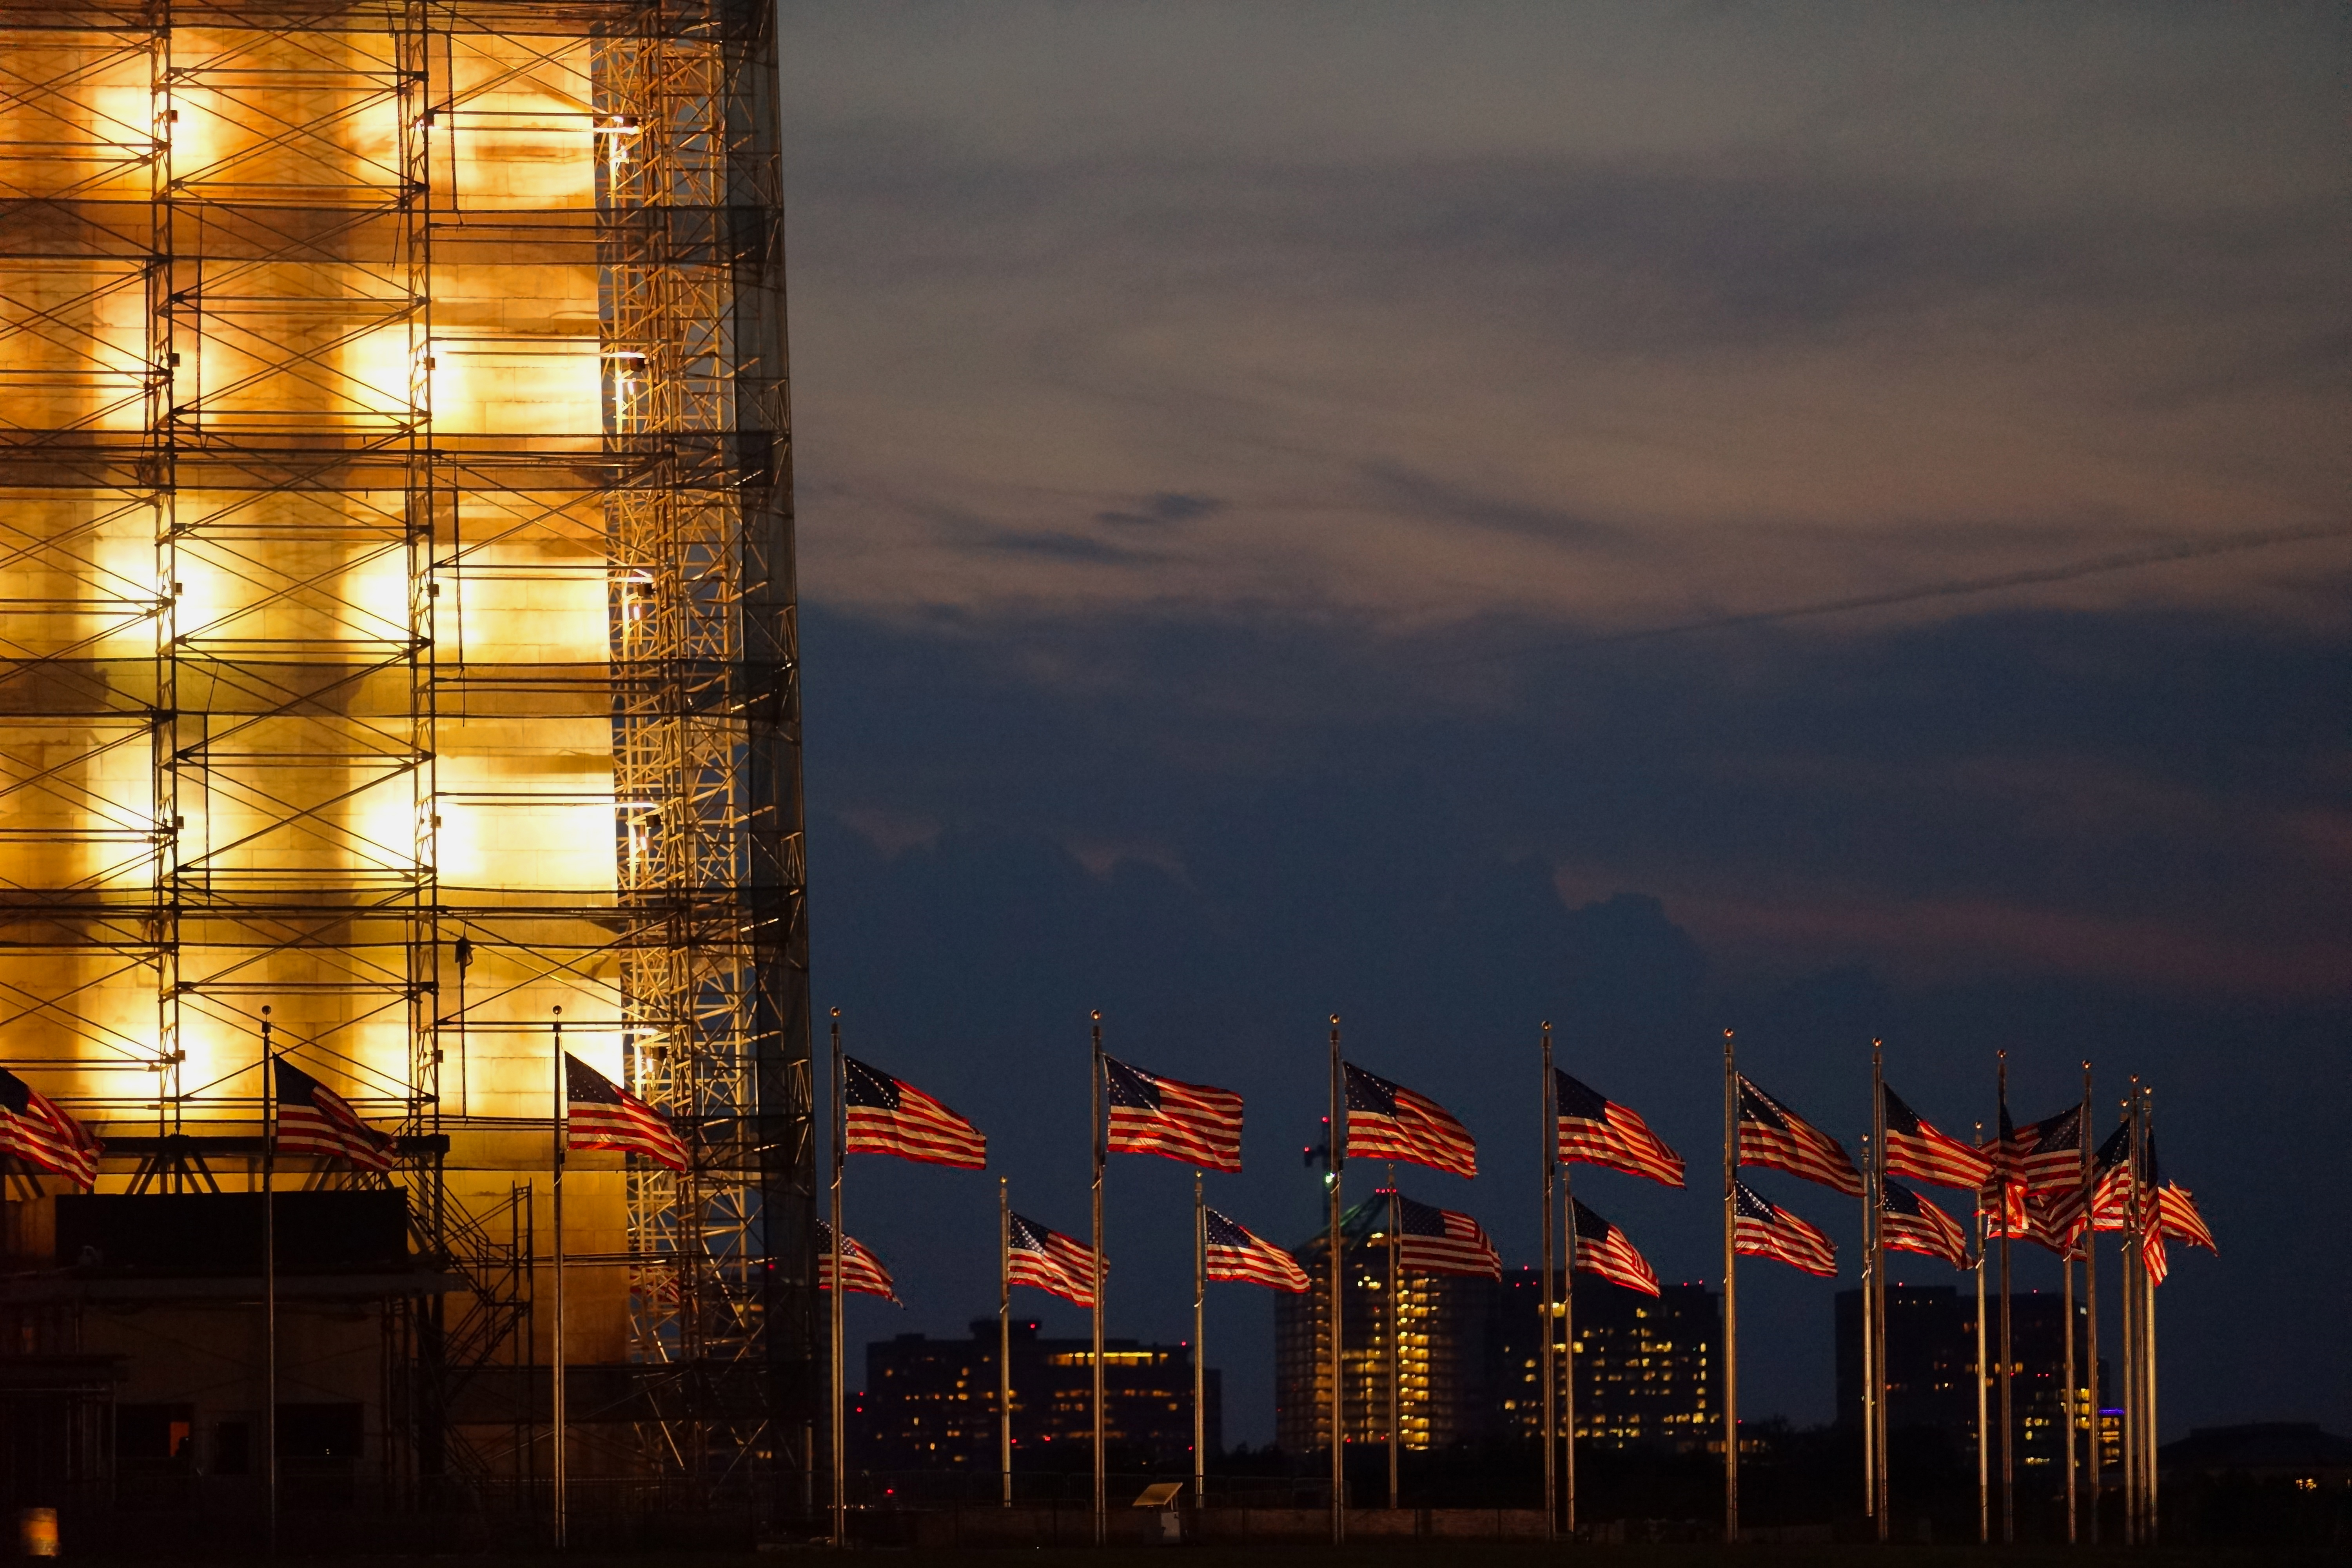 Lights come on at Washington Monument